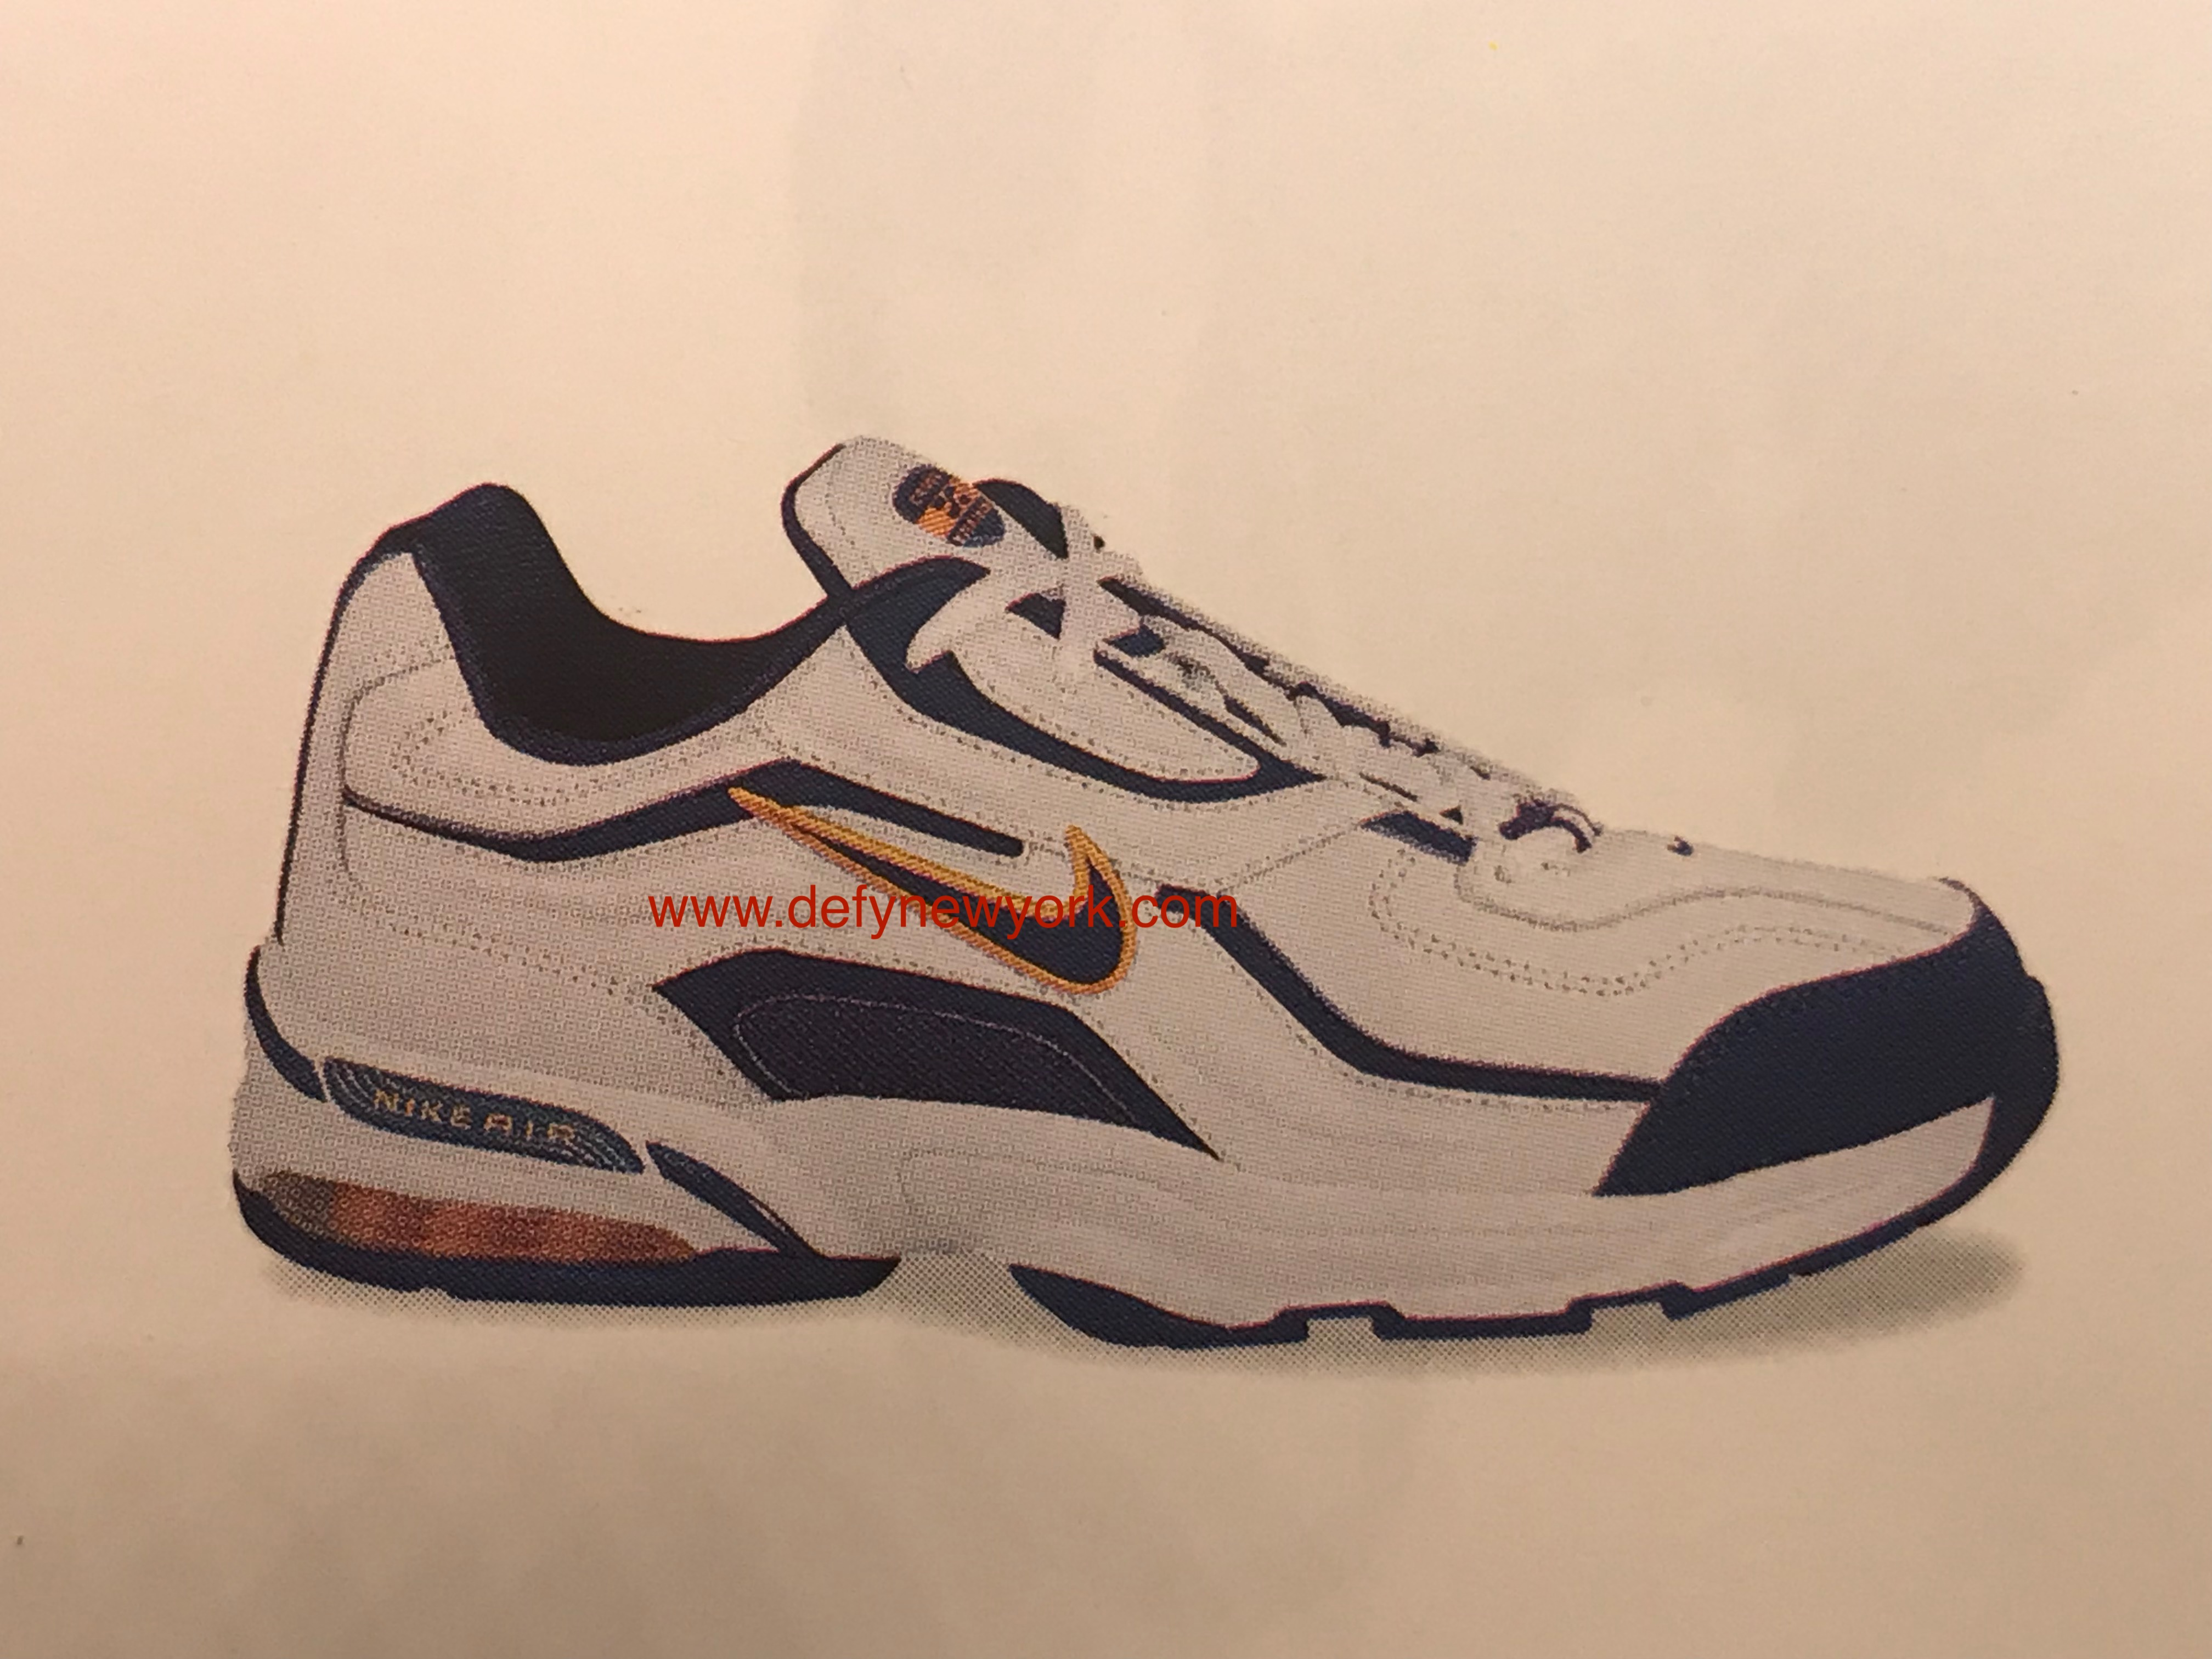 a2425b783860b Nike Air Edge 9000 Cross Training 2003   DeFY. New York-Sneakers ...